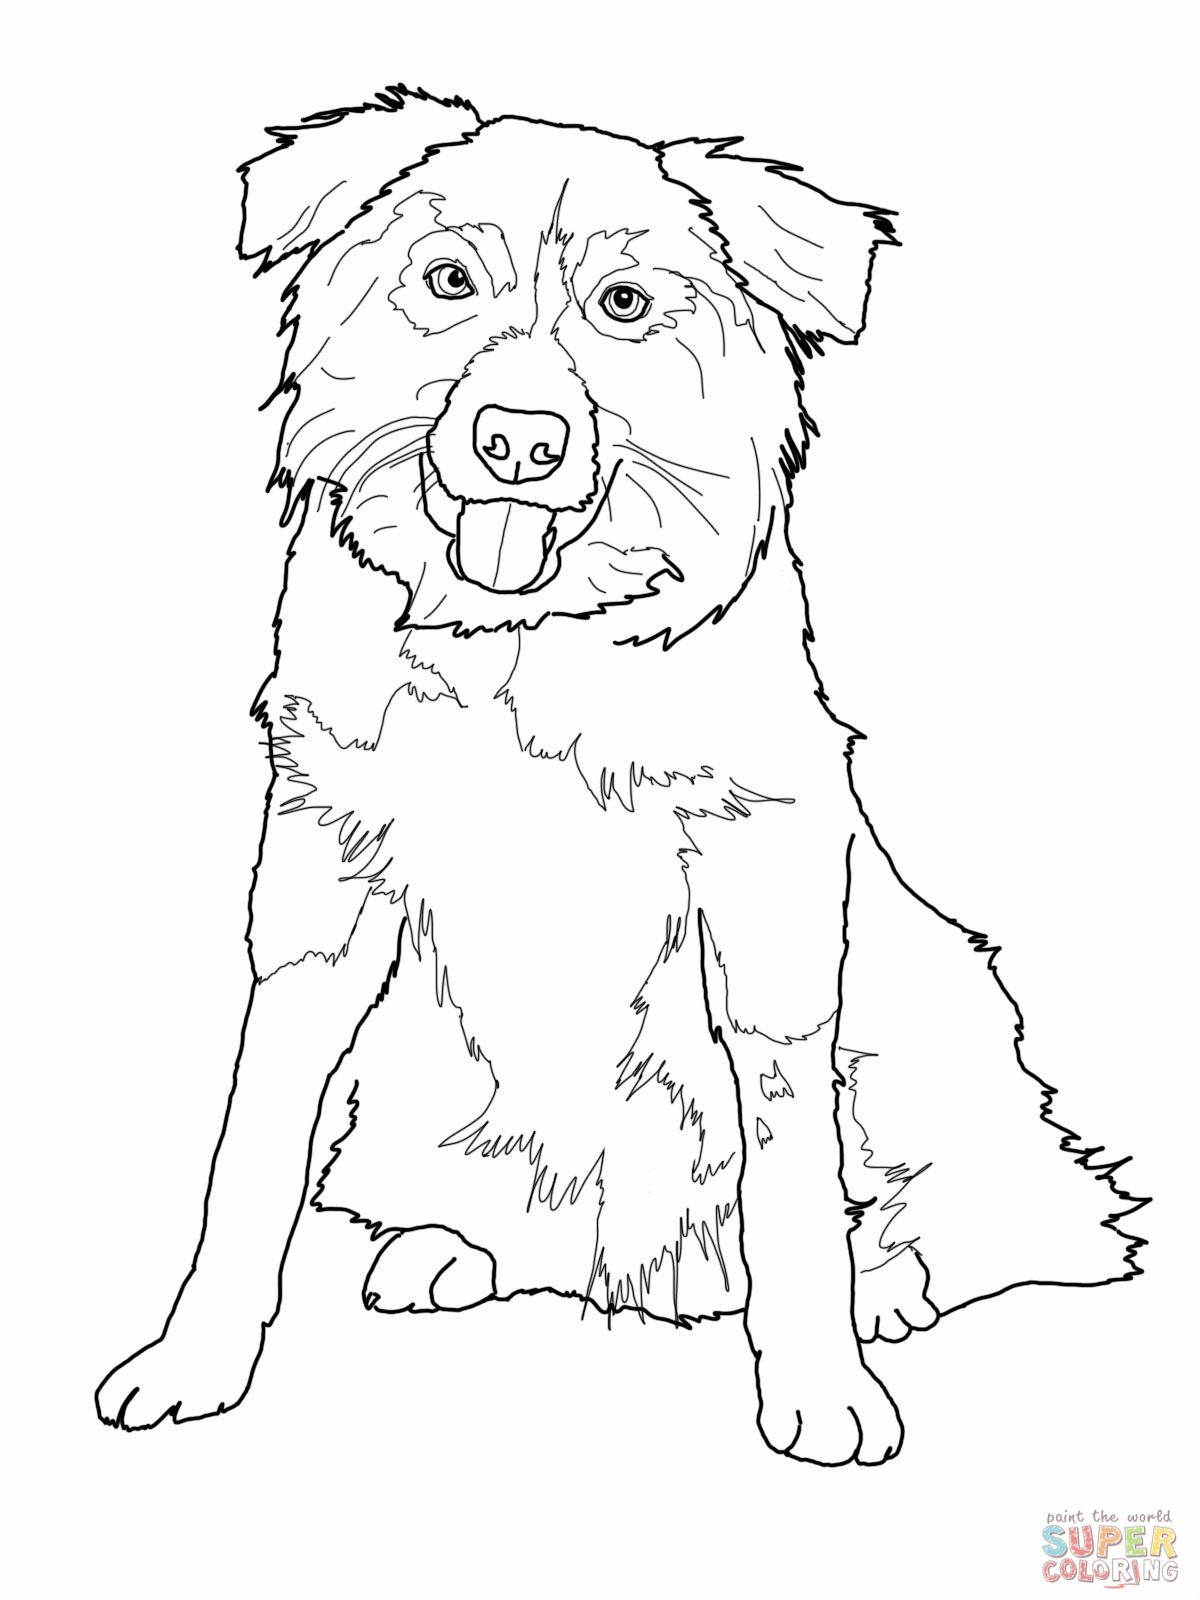 free+stencil+dog+border+collie | Border Collie Coloring Pages | dog ...